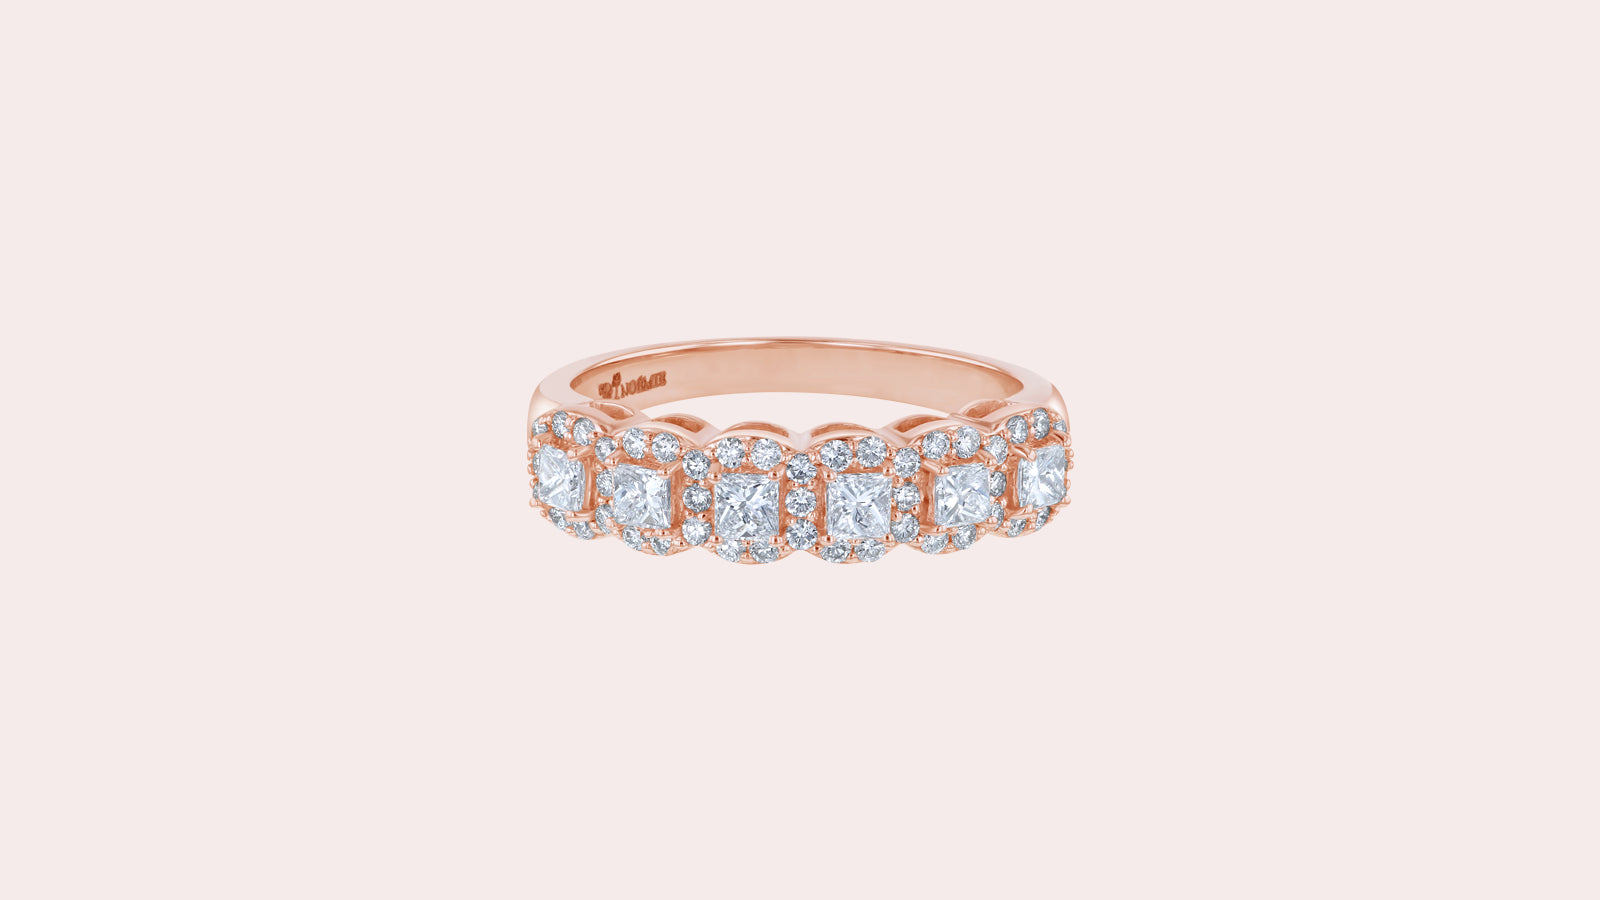 The Princess Diamond Halo Half Band Ring